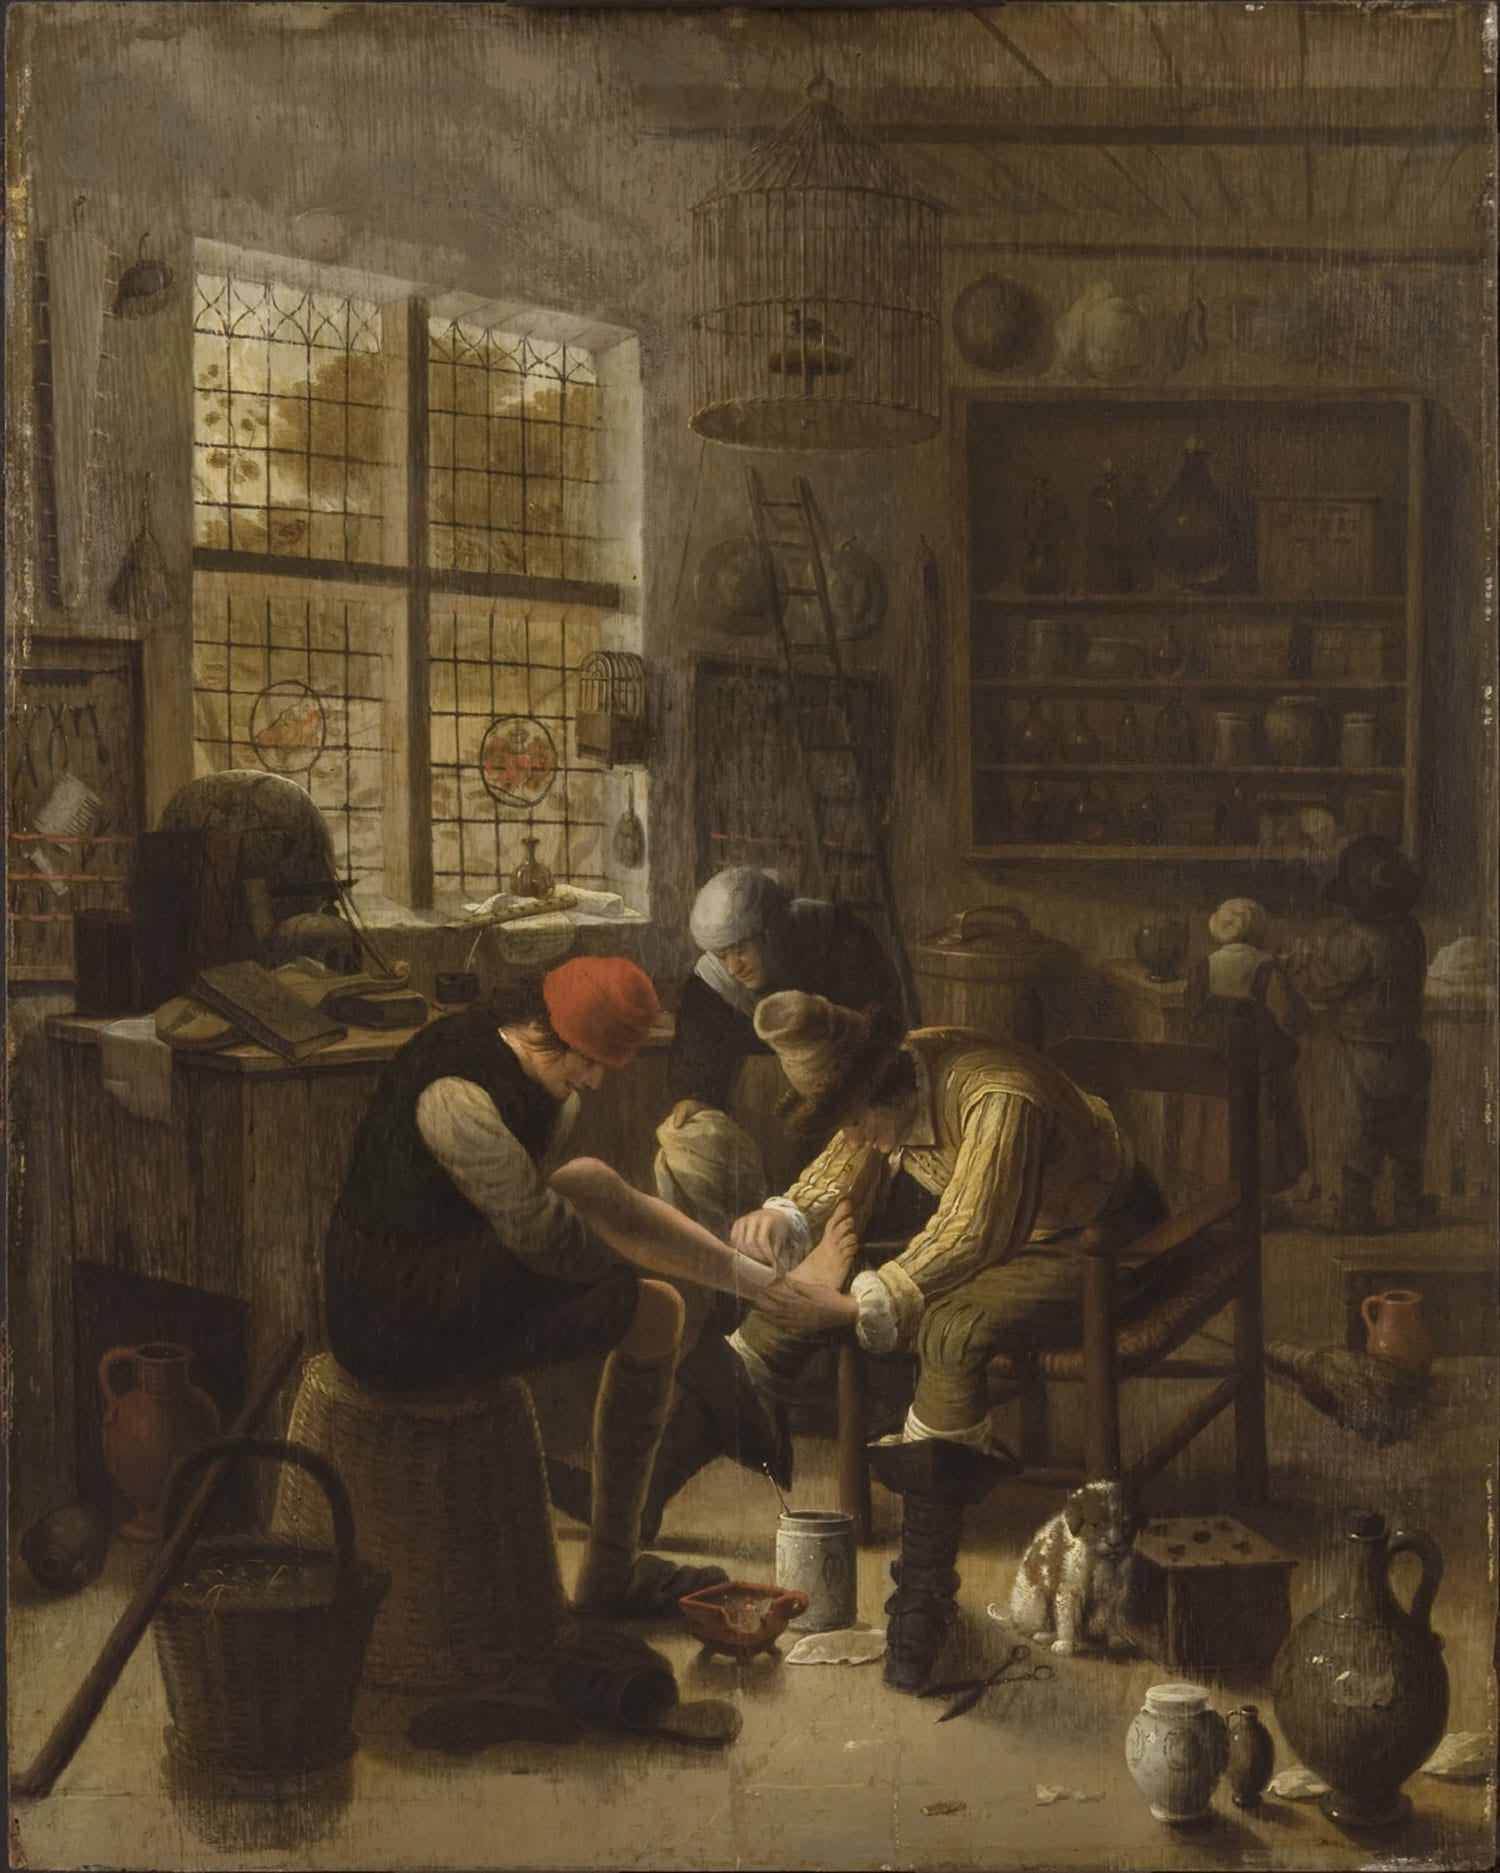 Painting of a village surgeon's office